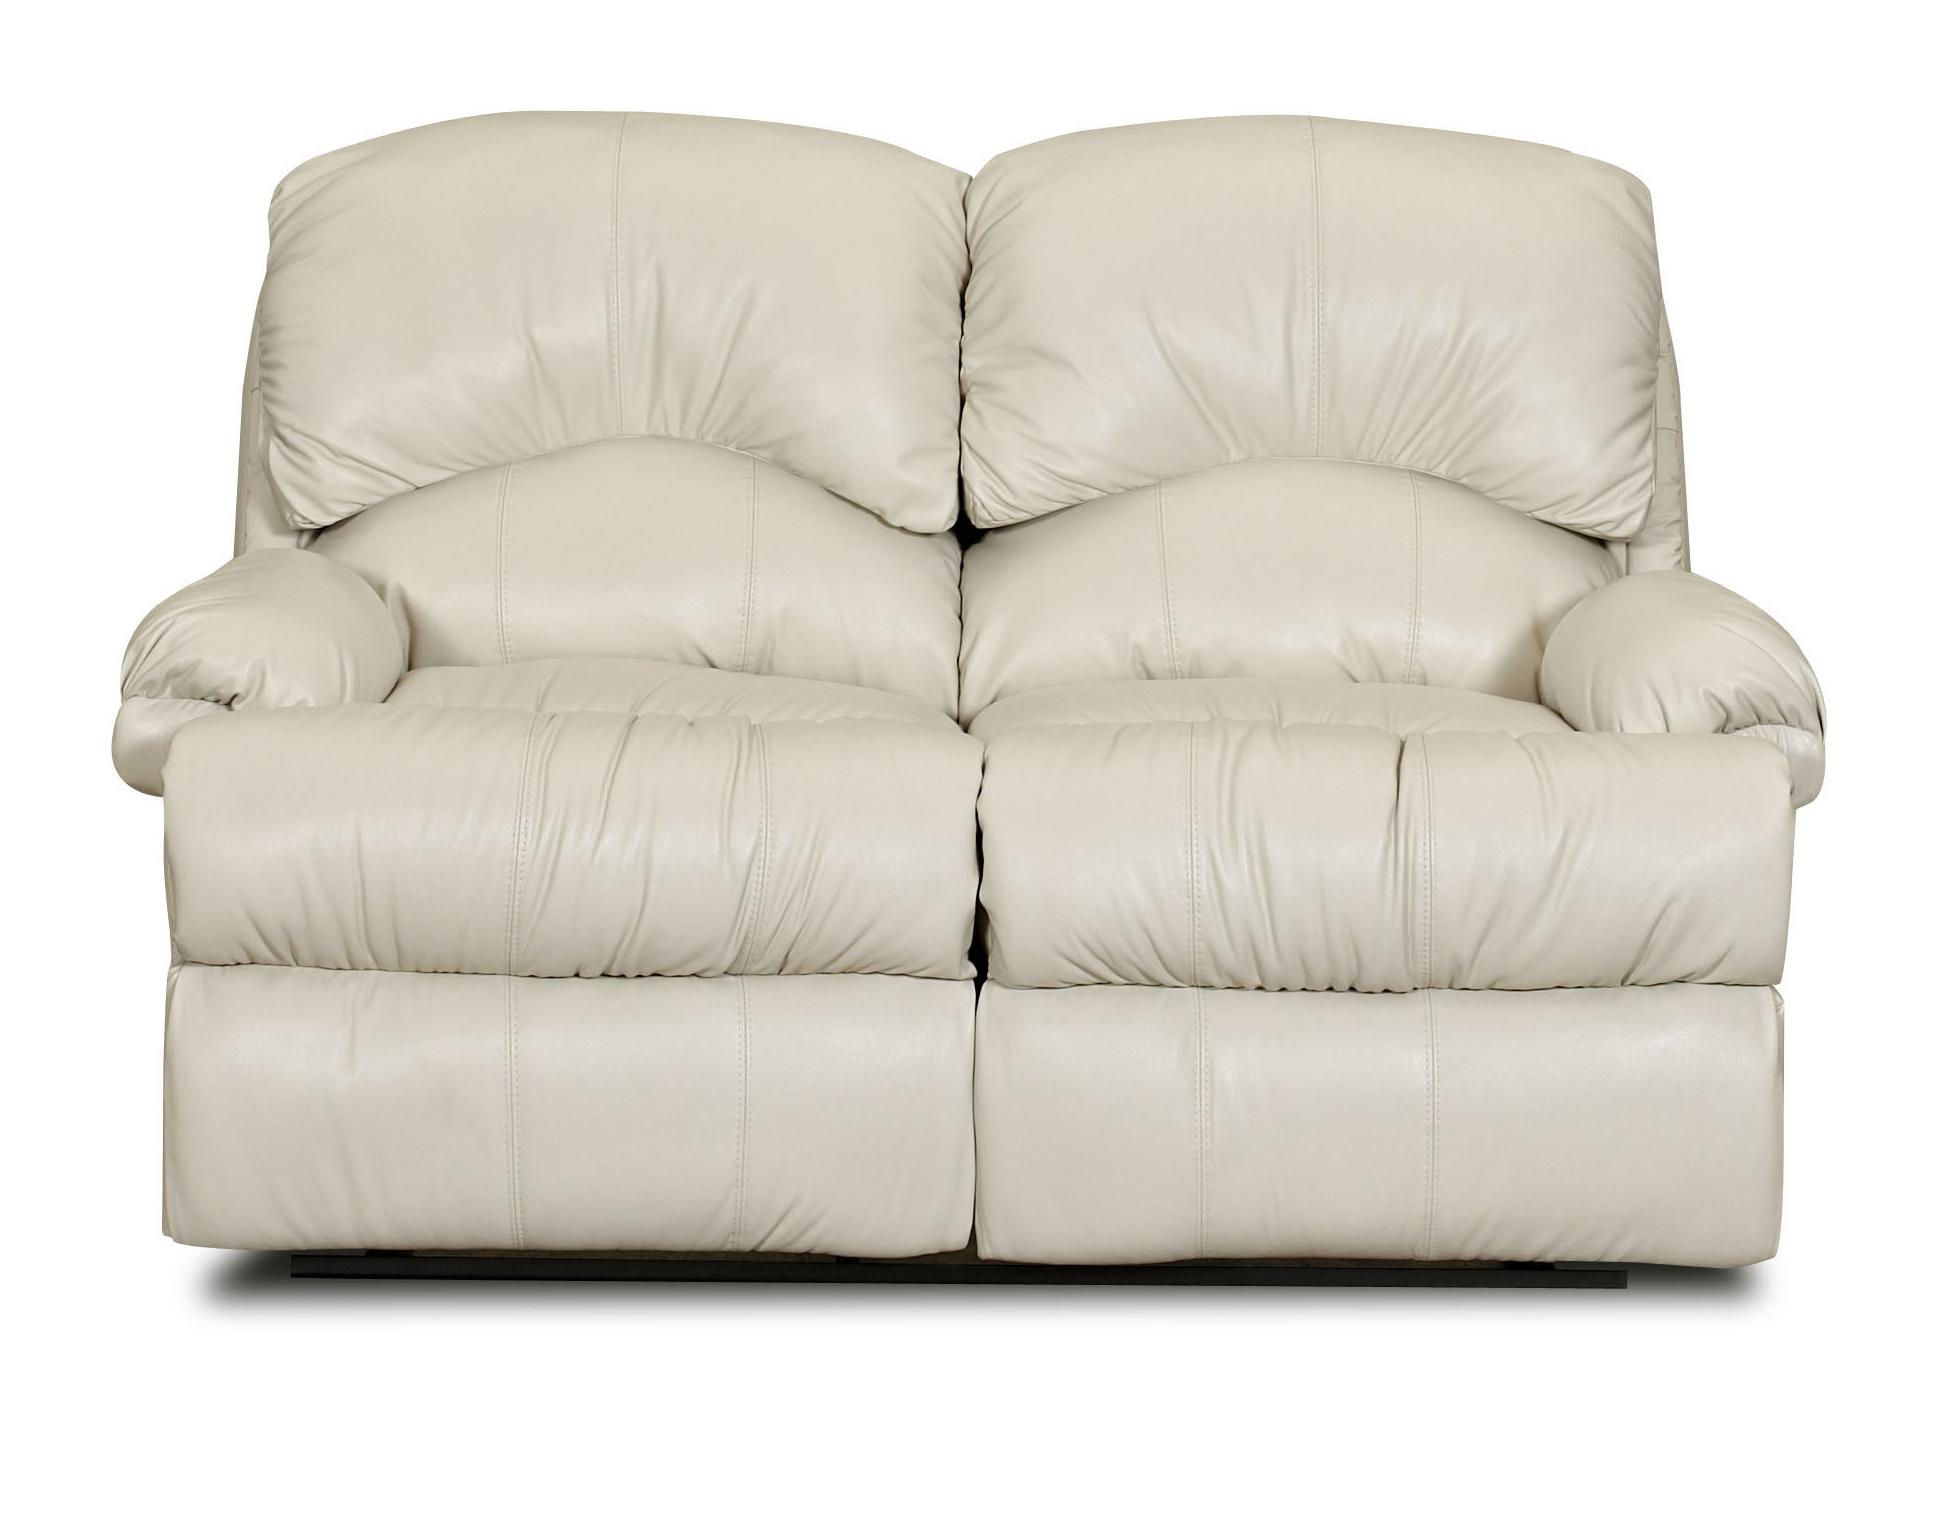 Klaussner Phoenix II Casual Power Reclining Loveseat - Item Number: L44803 PWRLS